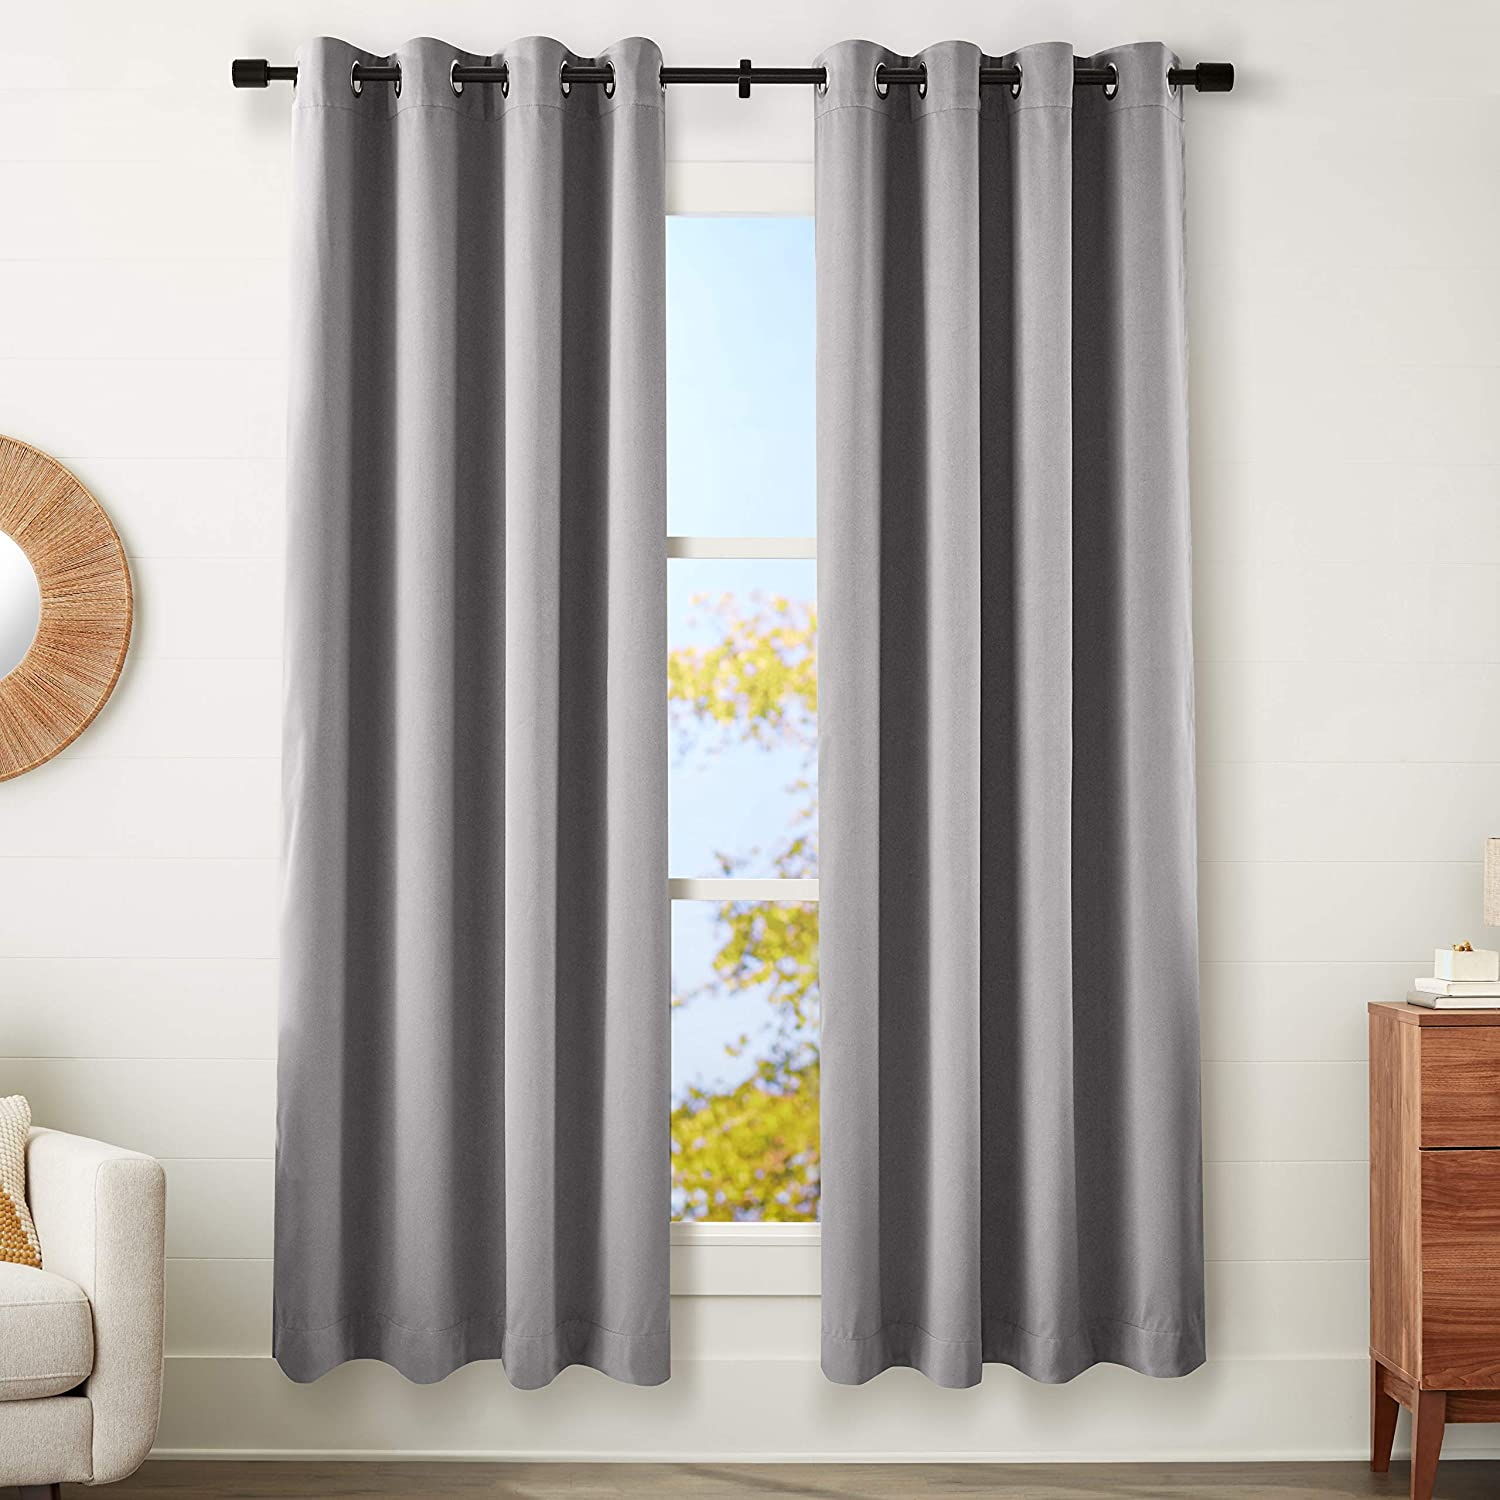 """AmazonBasics 99% Room Darkening Theatre Grade Heavyweight Window Panel with Grommets and Thermal Insulated, Noise Reducing Liner - 52"""" x 95"""",Charcoal Grey"""